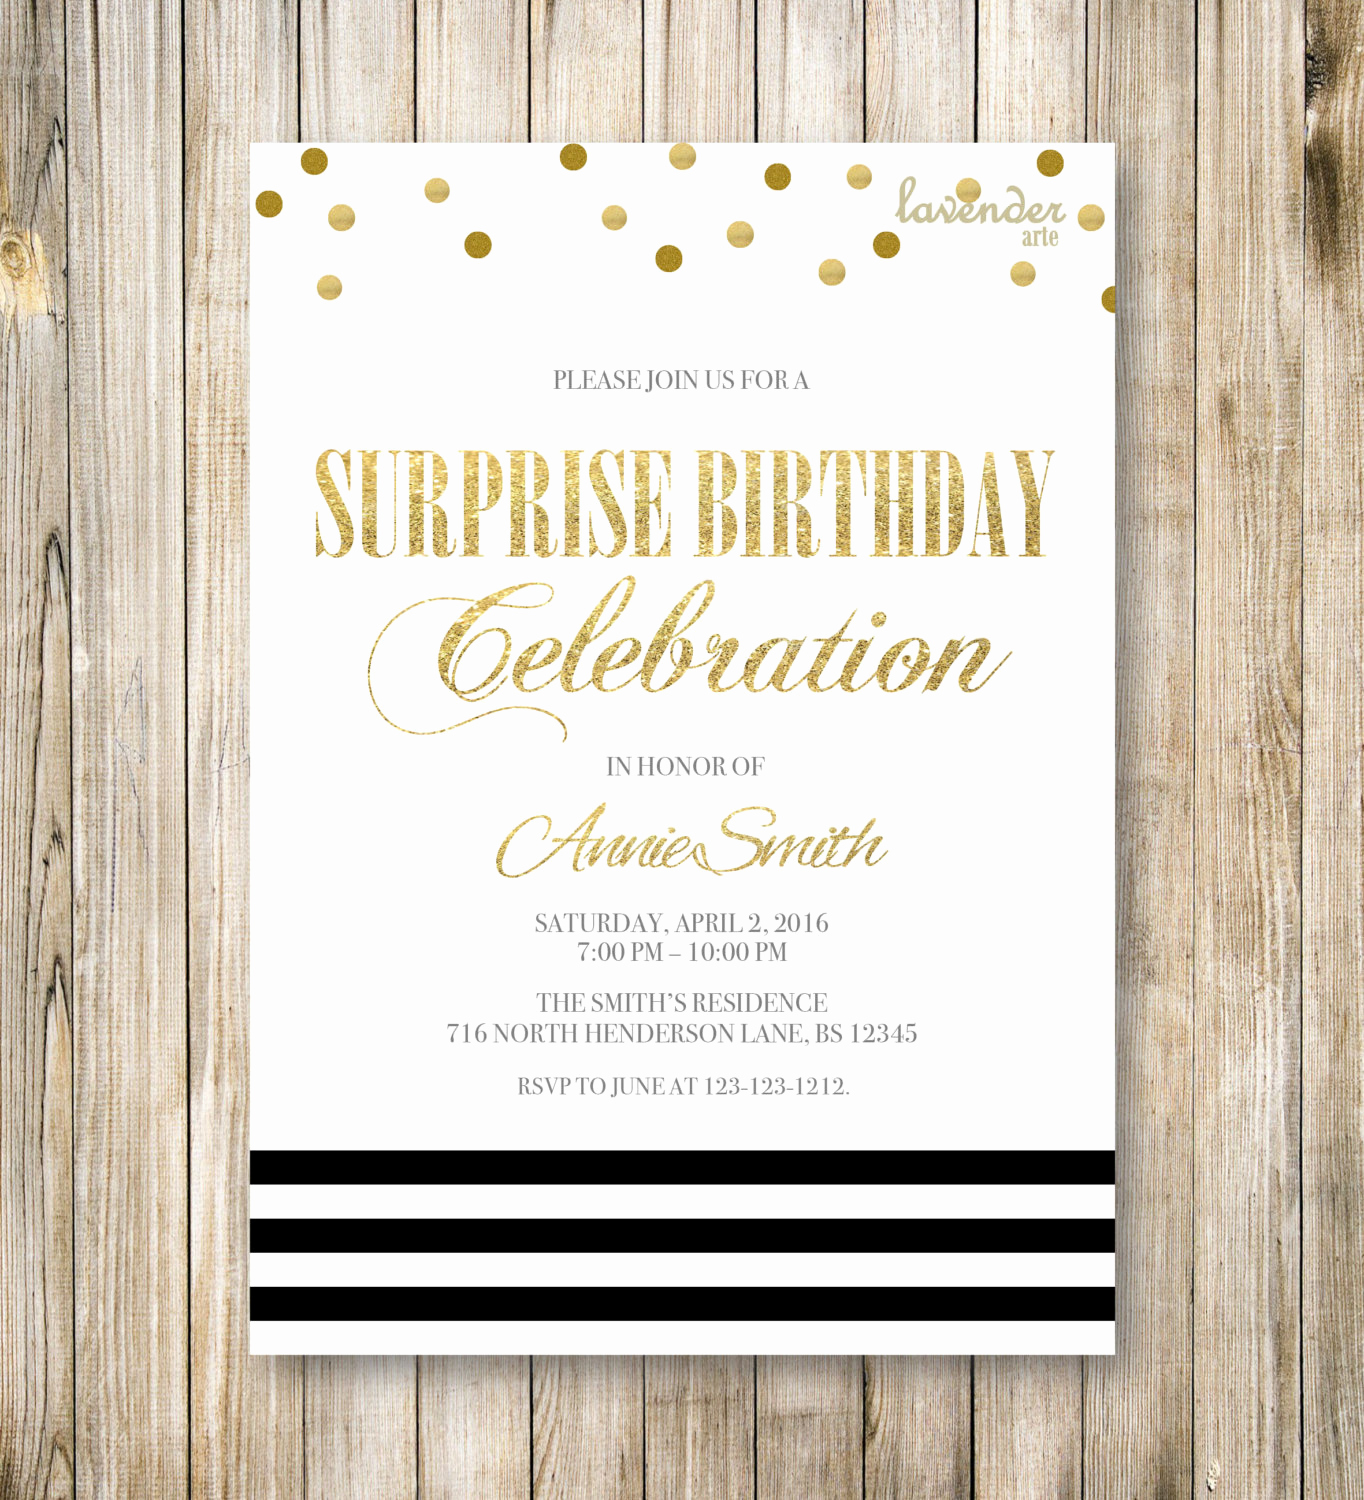 Suprise Party Invitation Wording Lovely Minimalist Surprise Birthday Party Invitation Shhh It S A